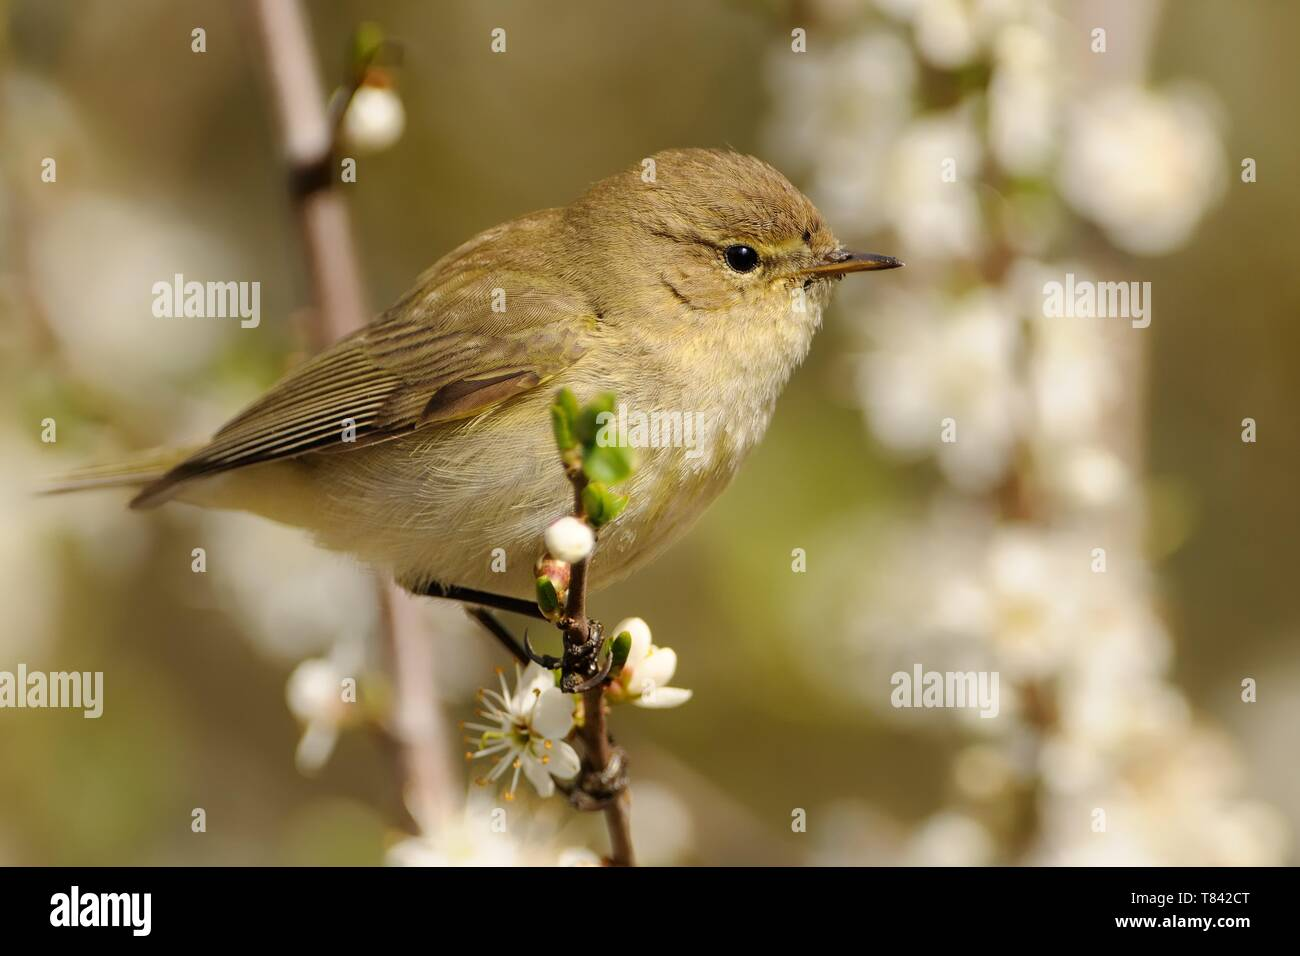 Common Chiffchaff - Phylloscopus collybita widespread leaf warbler which breeds in open woodlands throughout northern and temperate Europe and Asia. Stock Photo